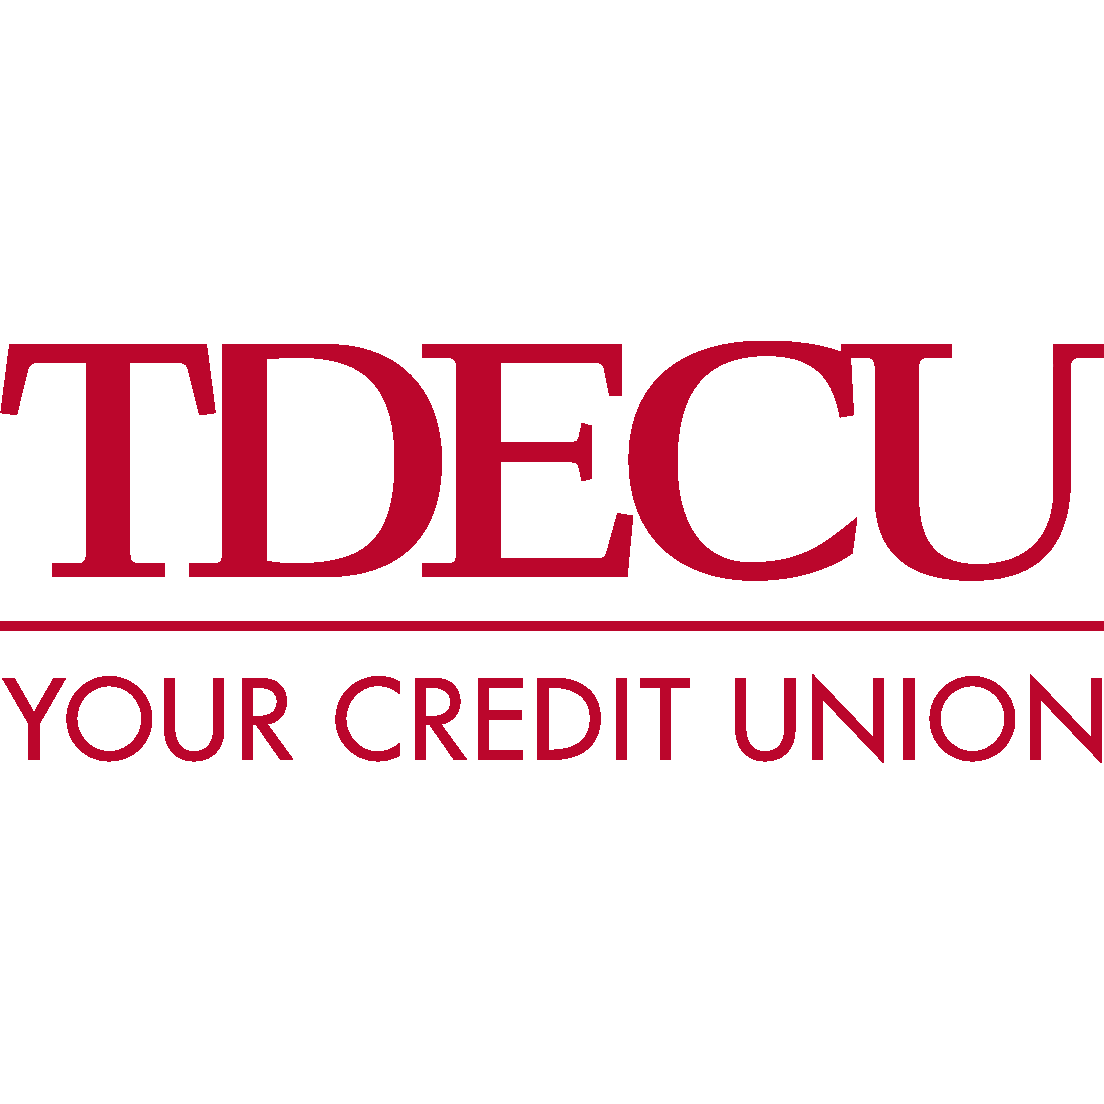 TDECU - Bay City, TX - Credit Unions